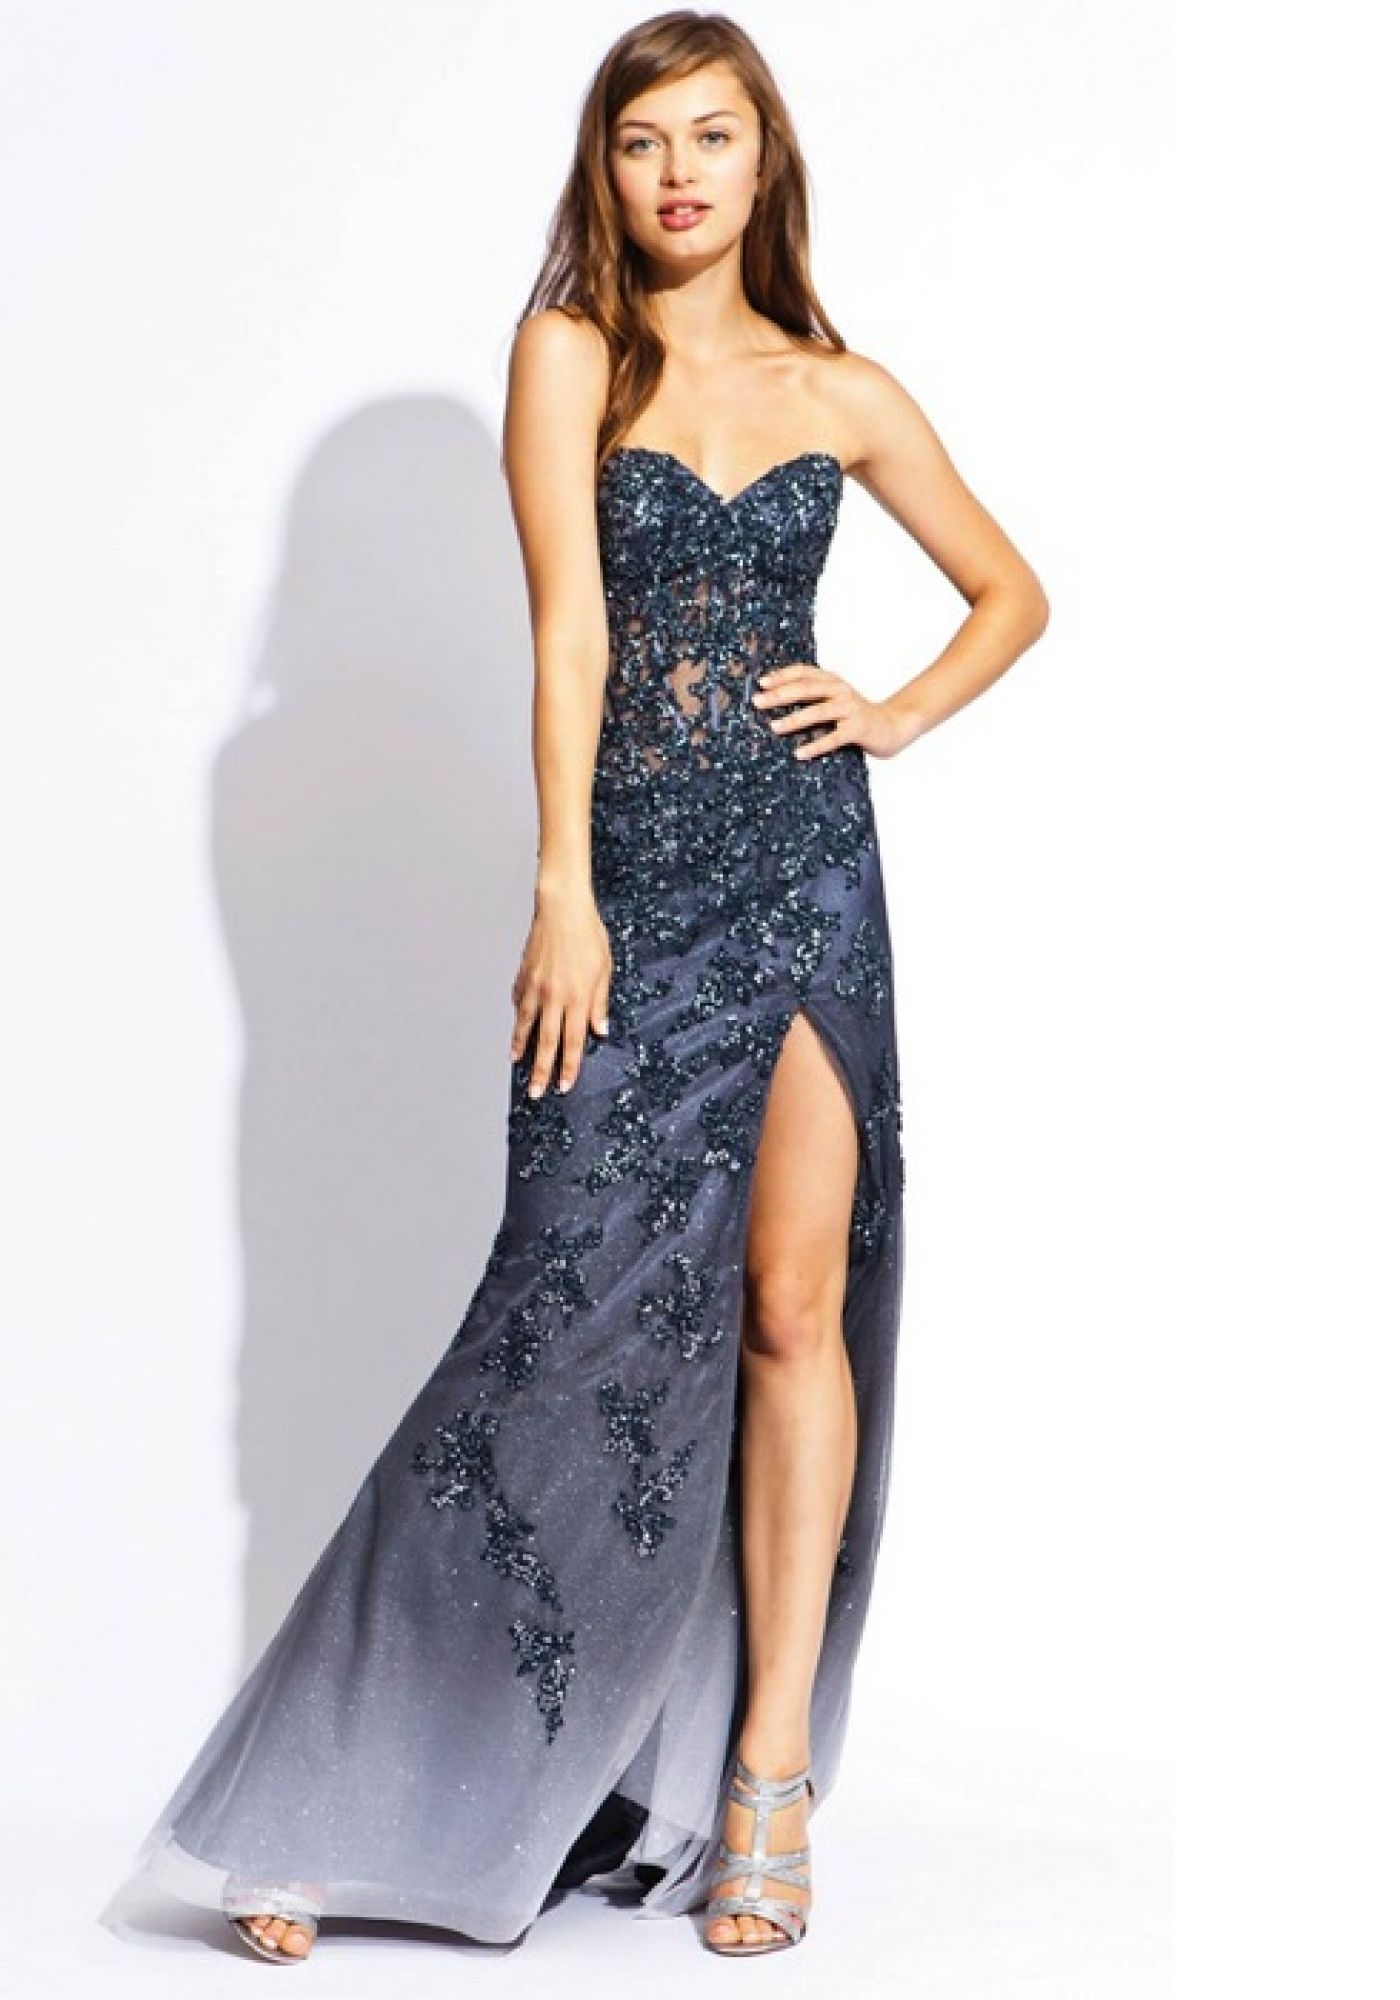 Jovani 1684B | Prom Dresses | Pinterest | Prom, Sapphire and Dress prom